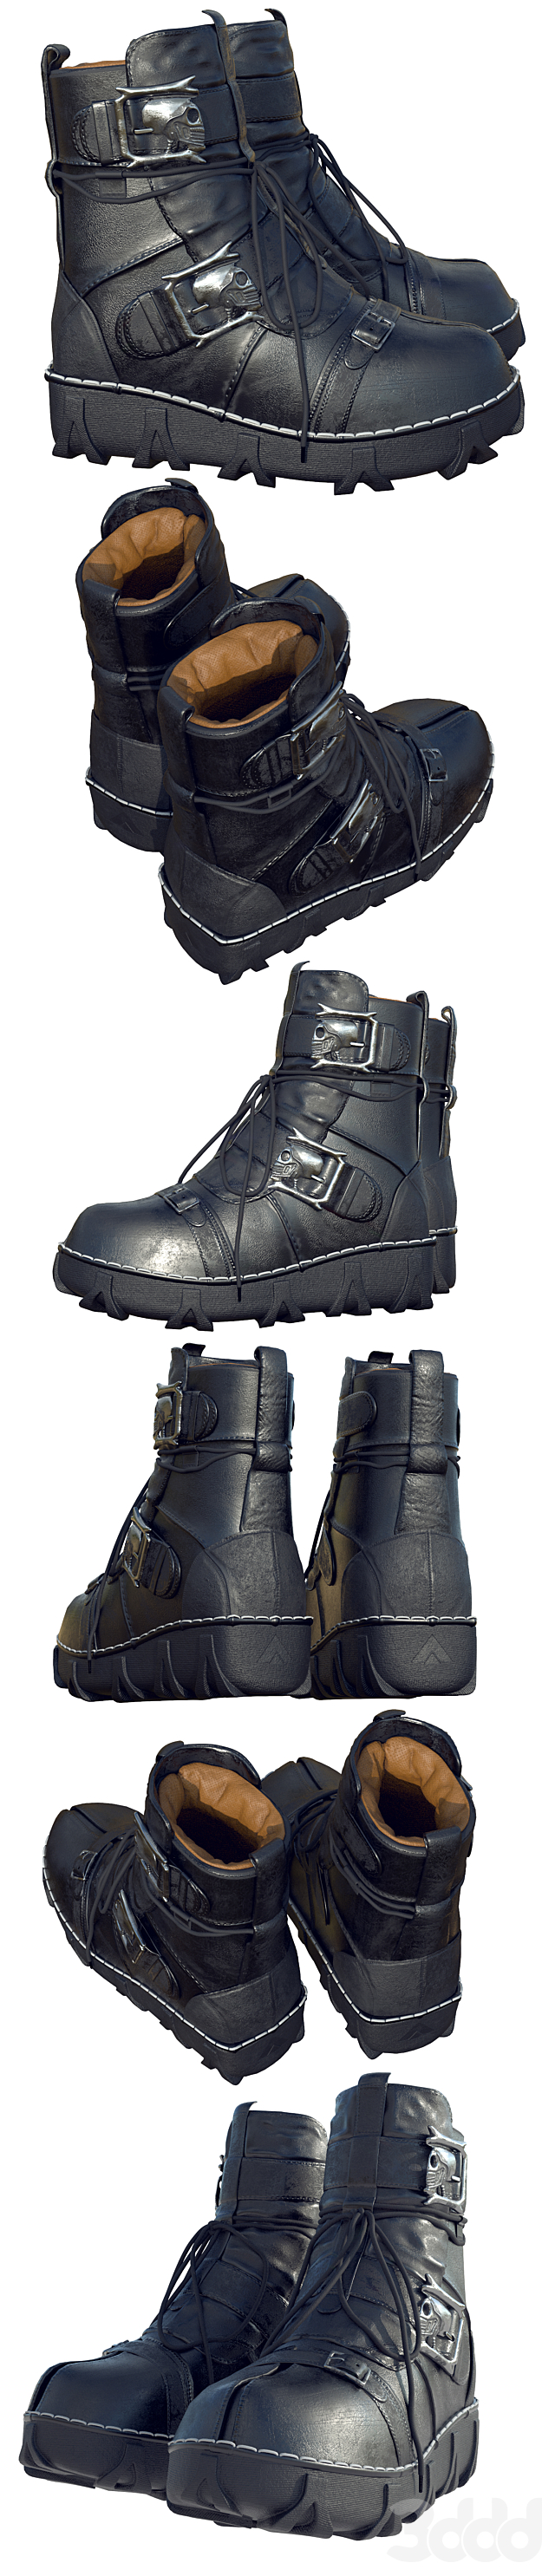 Boots gothic winter